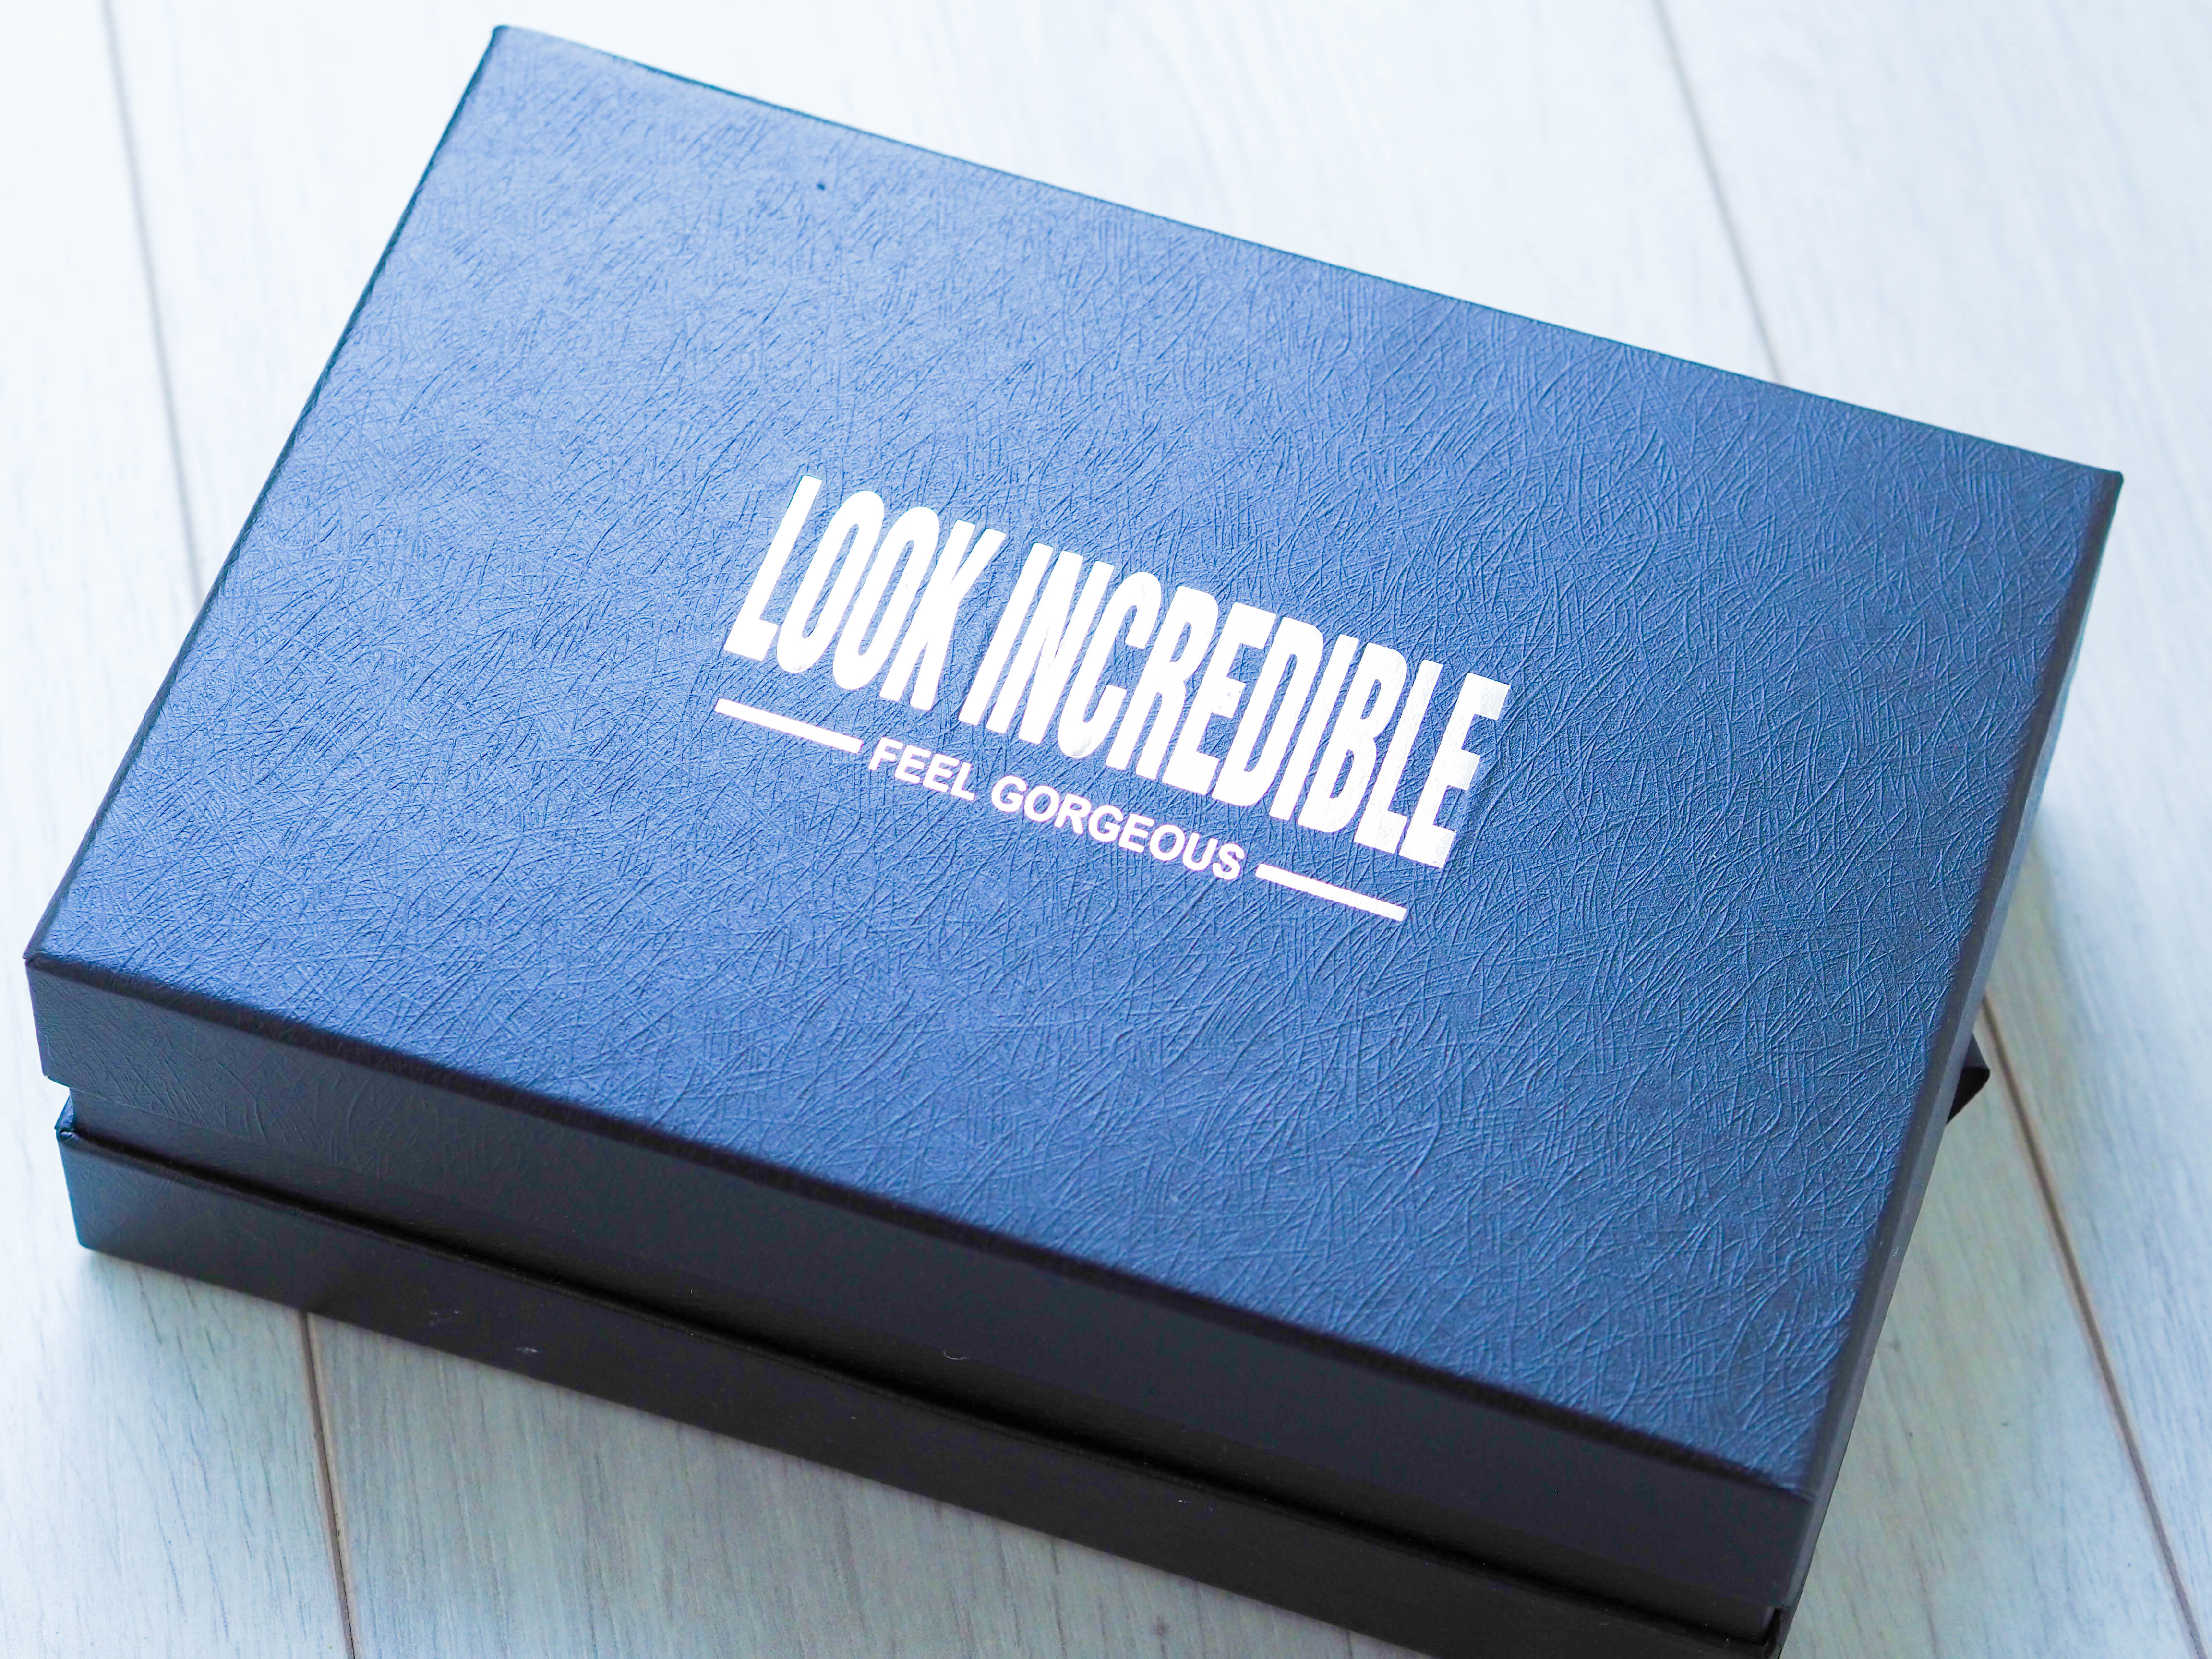 Look Incredible September 2019 Deluxe Edition Box